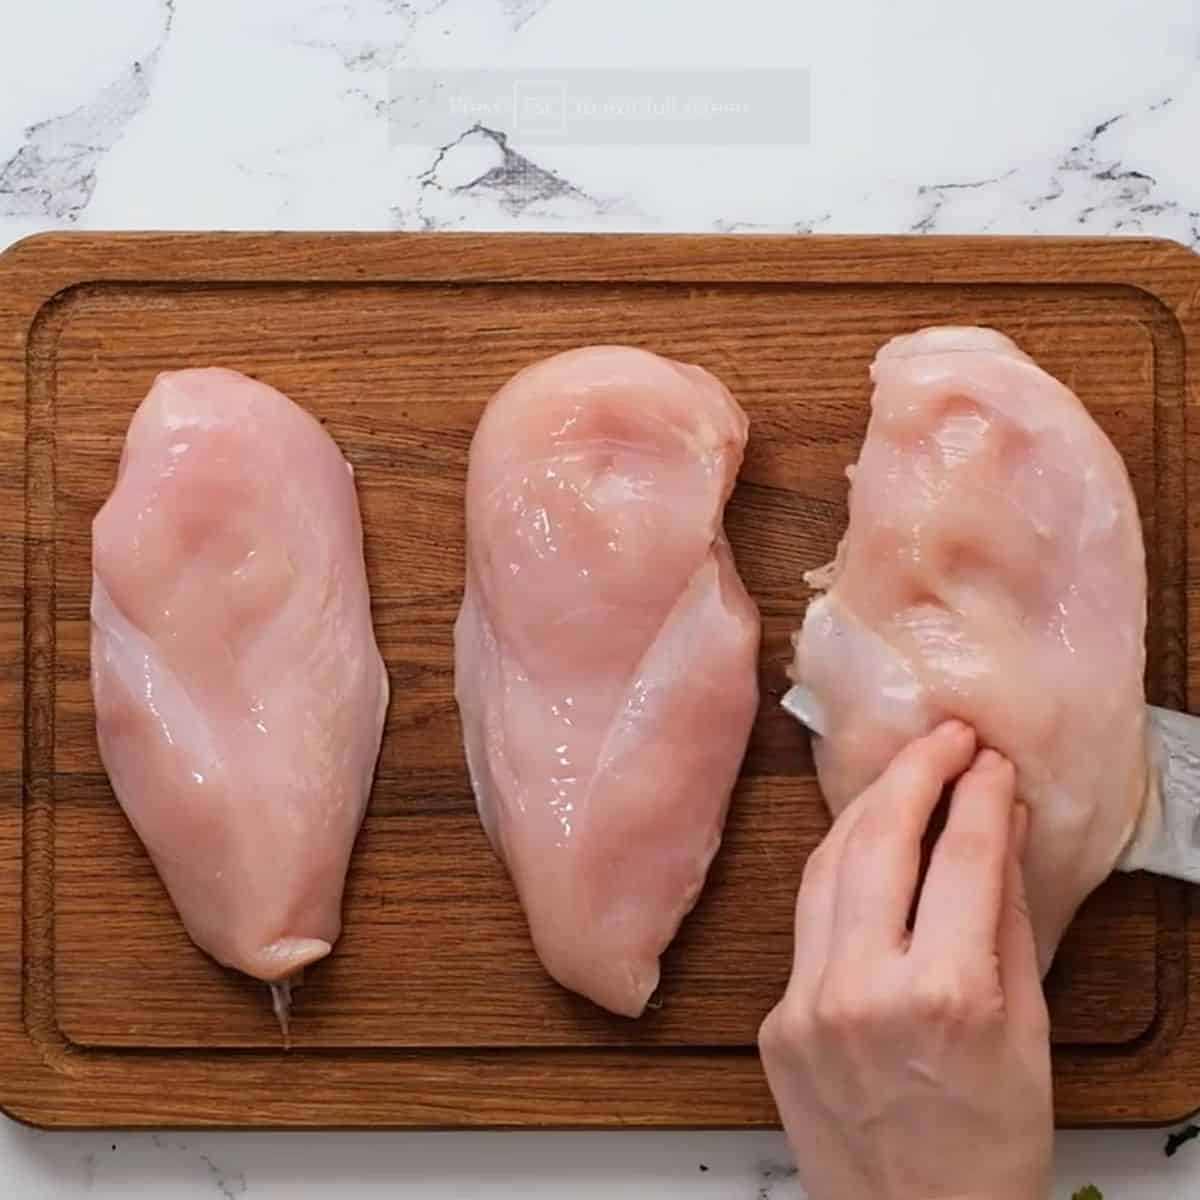 Knife cutting thick chicken breasts into chicken cutlets.